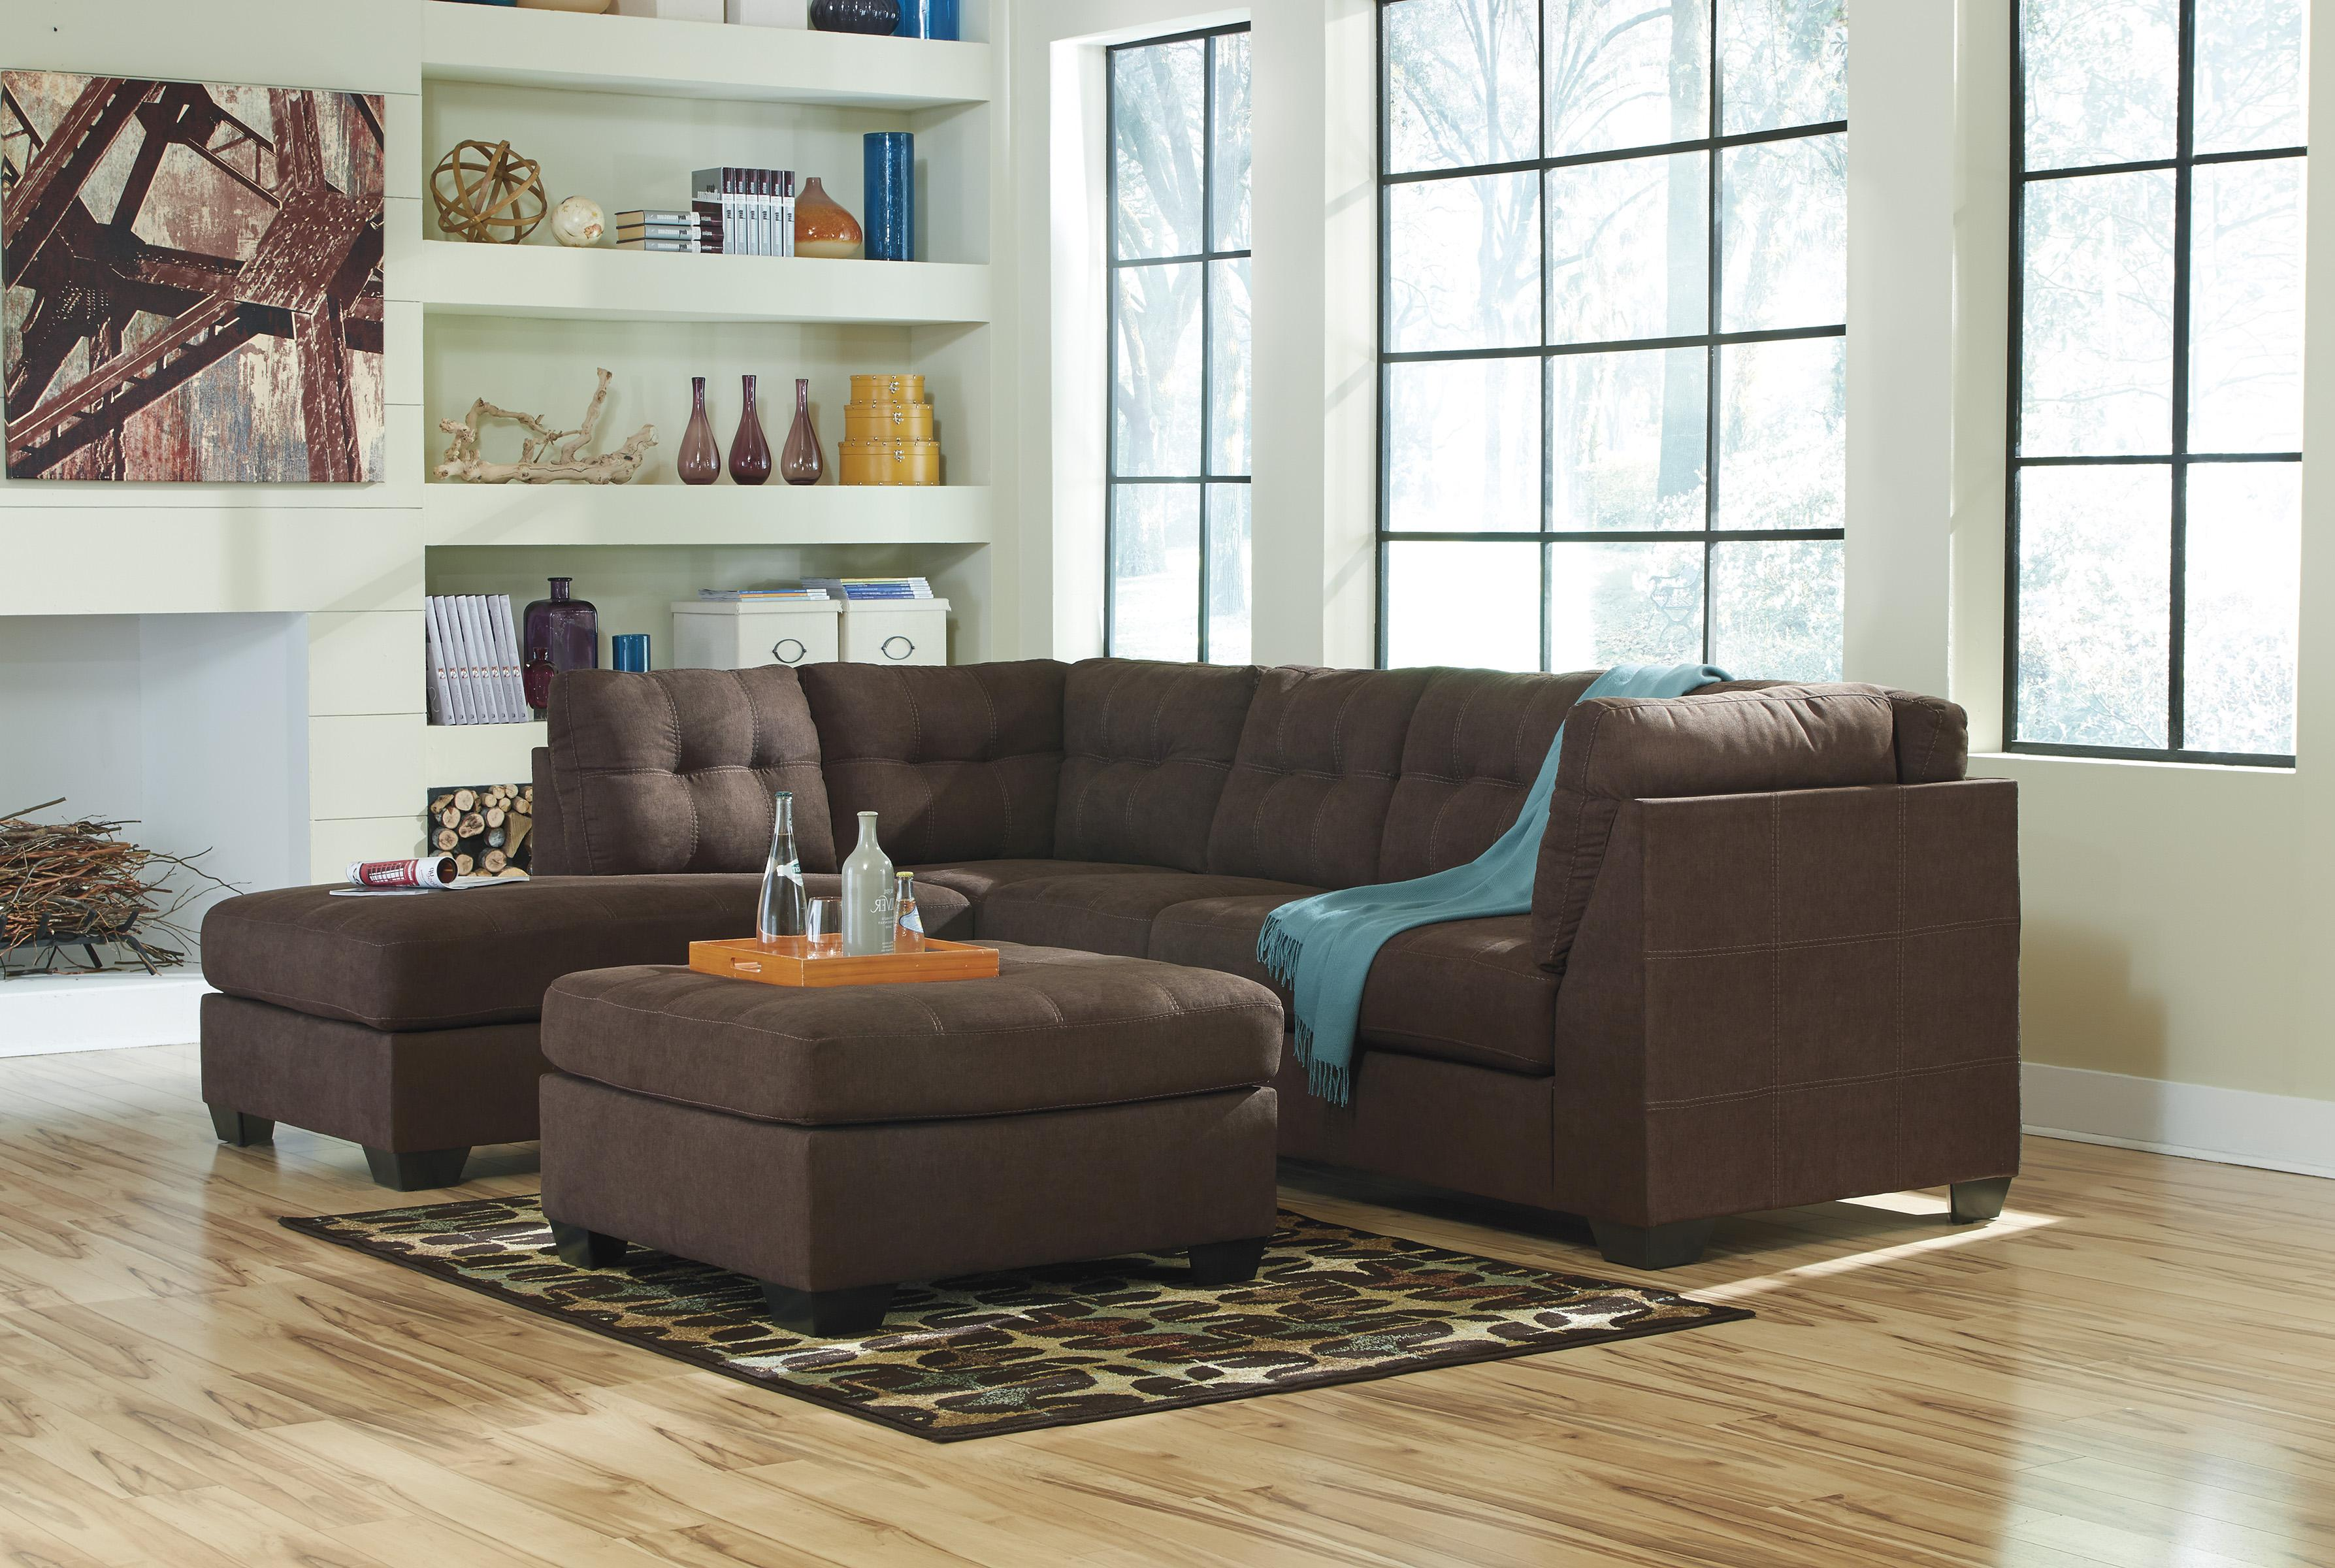 Maier - Walnut Stationary Living Room Group by Benchcraft at Catalog Outlet